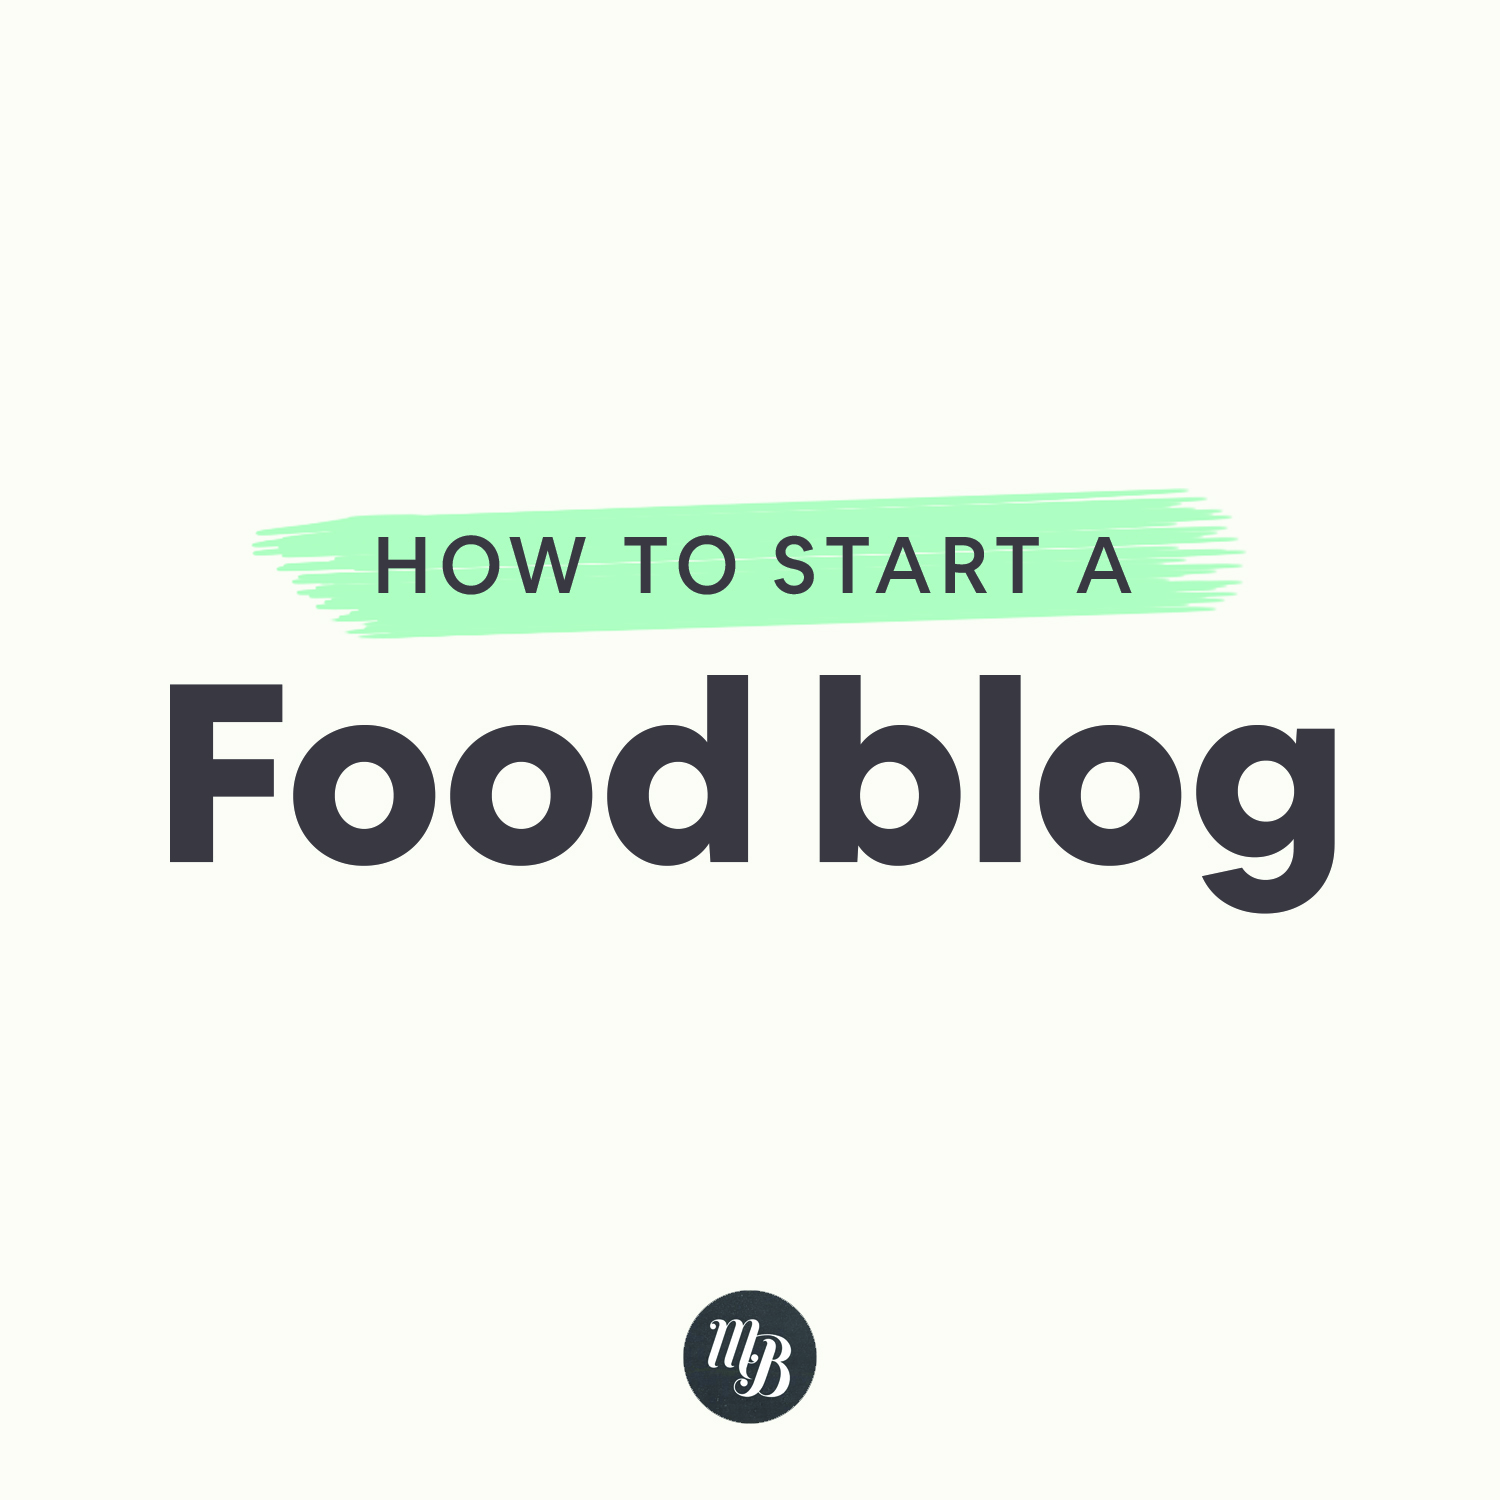 Minimalist baker logo and text saying How to Start a Food Blog